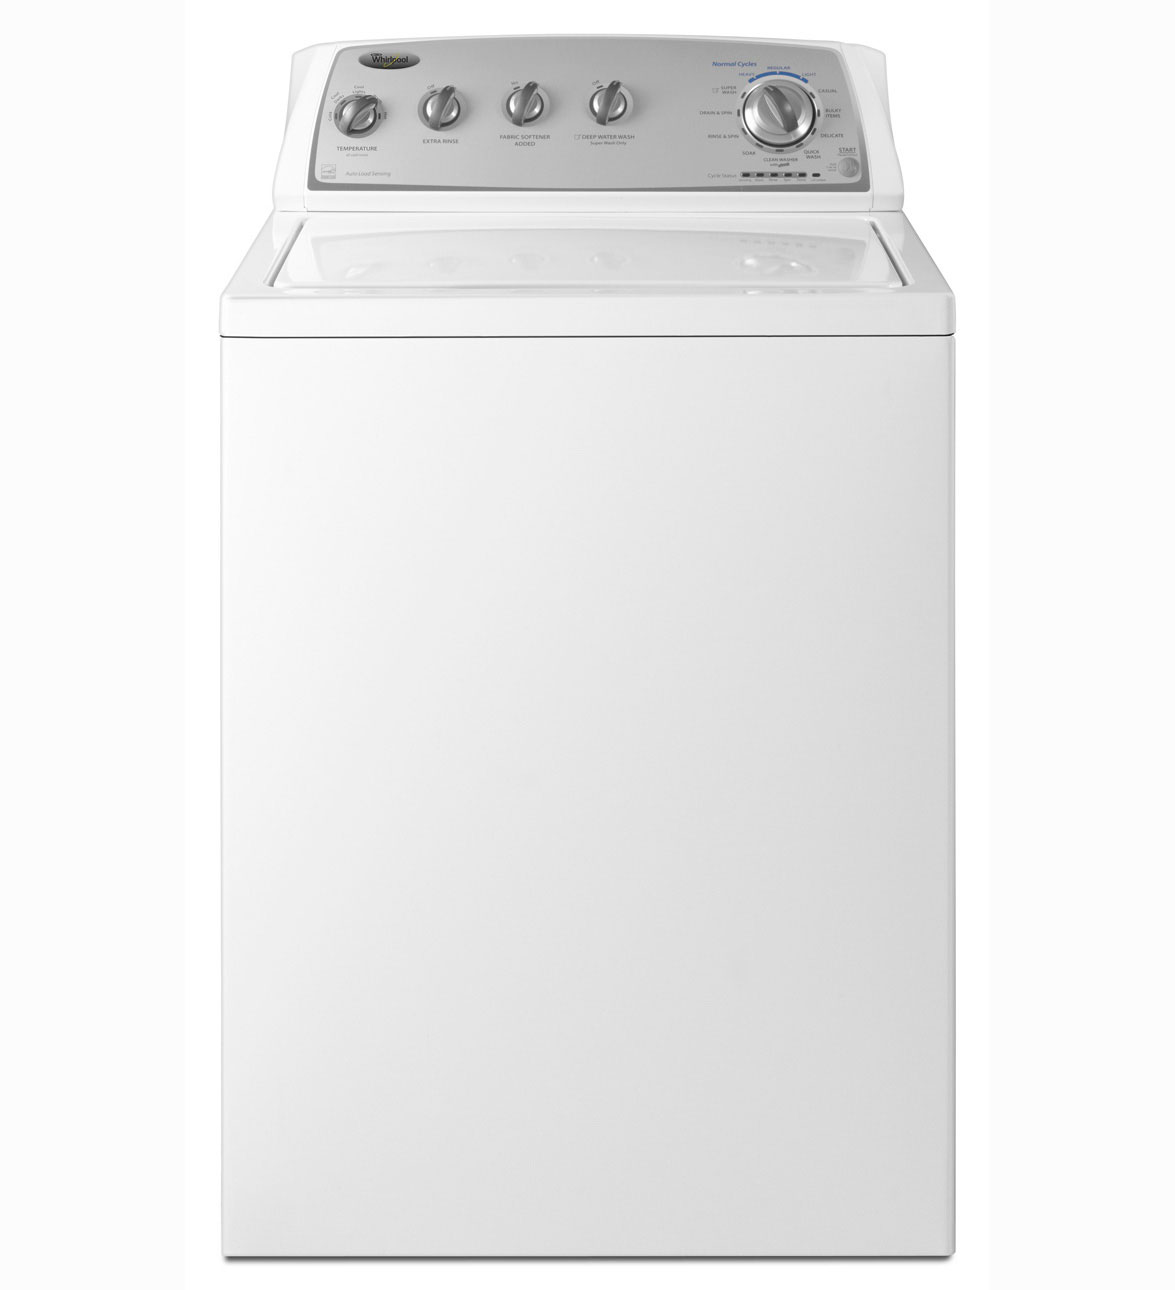 Hotpoint Top Loading Washing Machine Hotpoint Washing Machine Top Loader Info